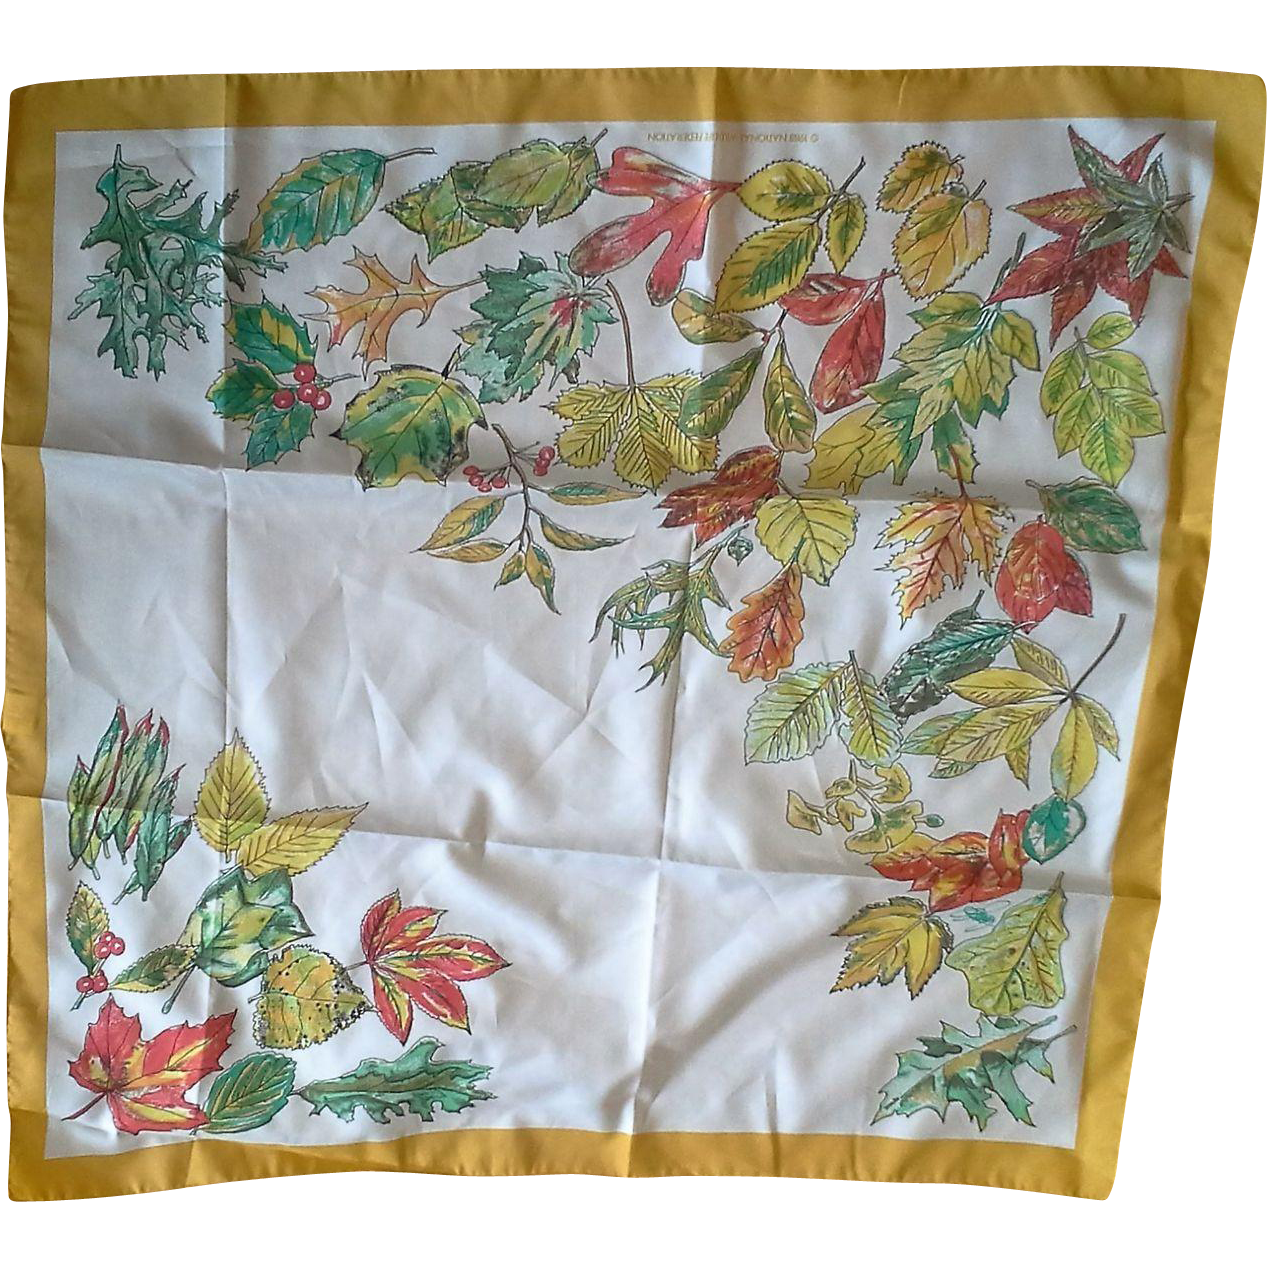 National Wildlife Federation 1988 Scarf June Critchfield Crepe de Chine